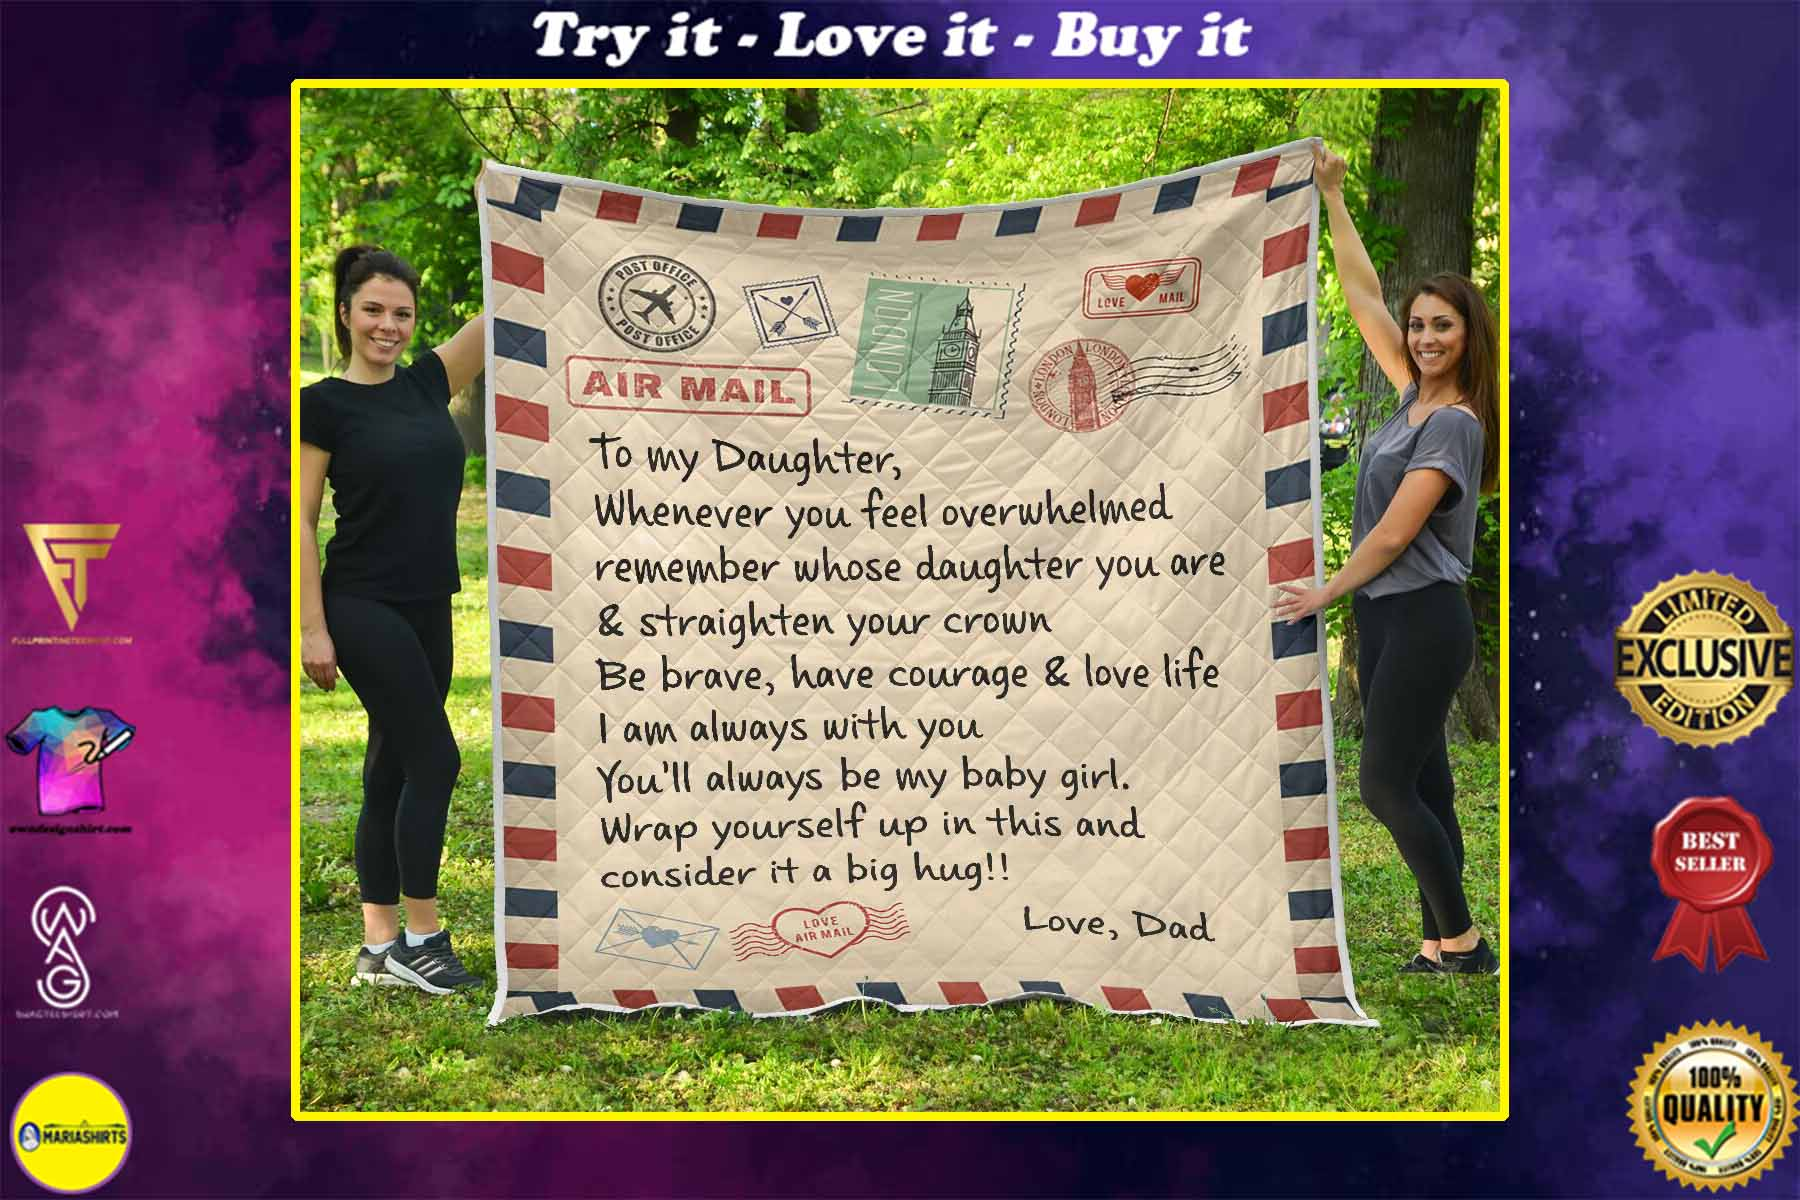 air mail letter to my daughter youll always be my baby girl your dad quilt